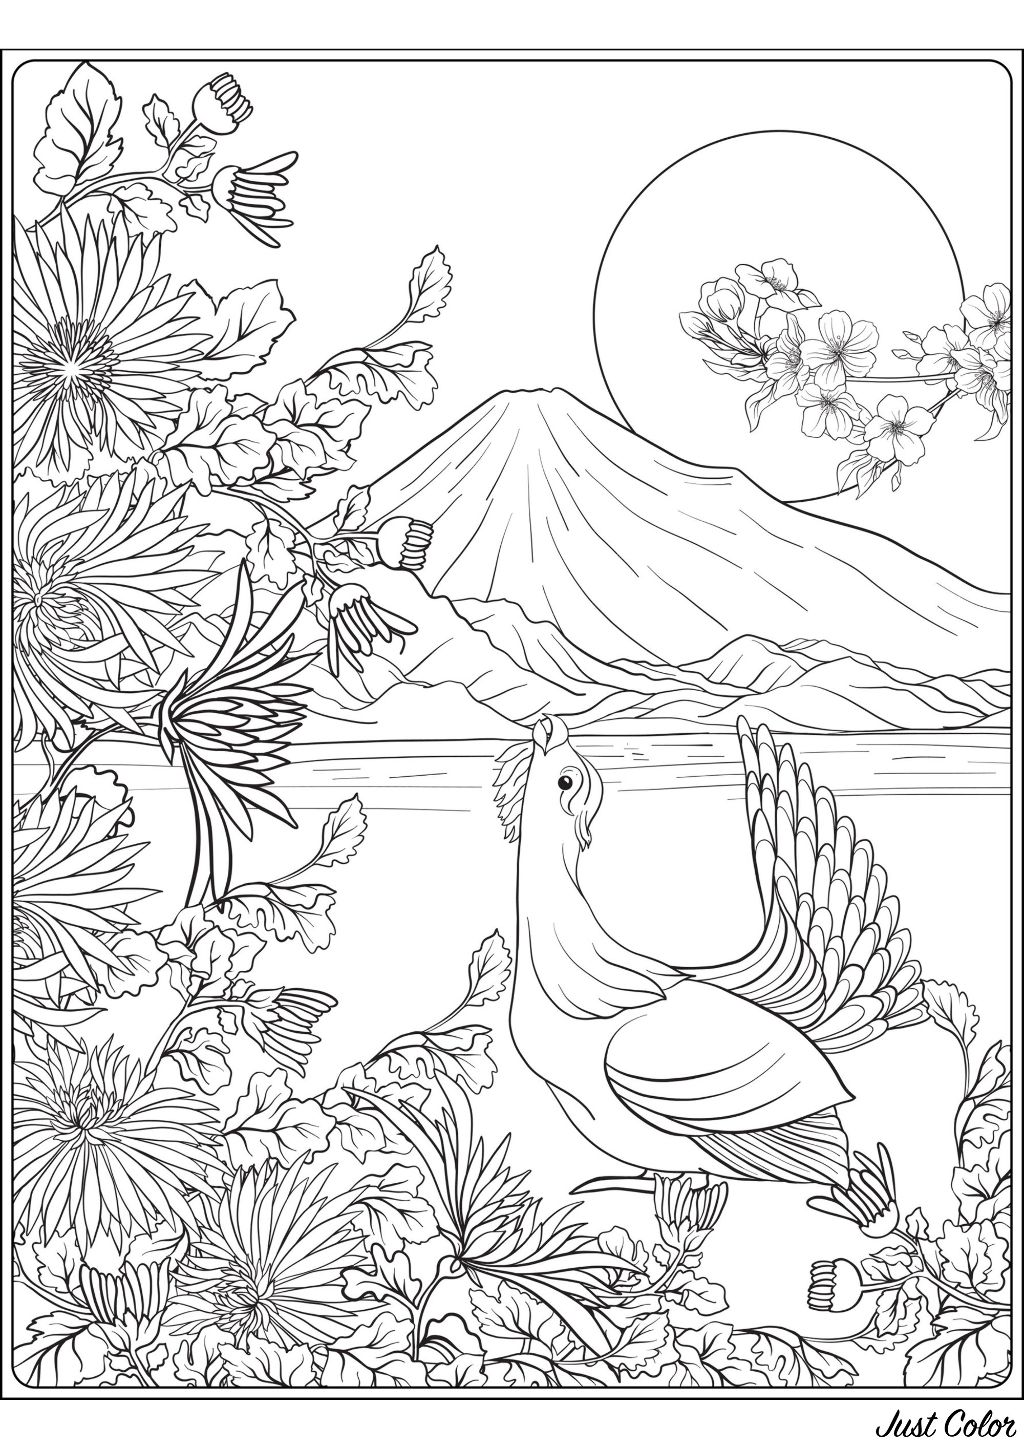 A superb coloring page on the theme of Japan, with a bird, Mount Fuji, and magnificent vegetation in the foreground